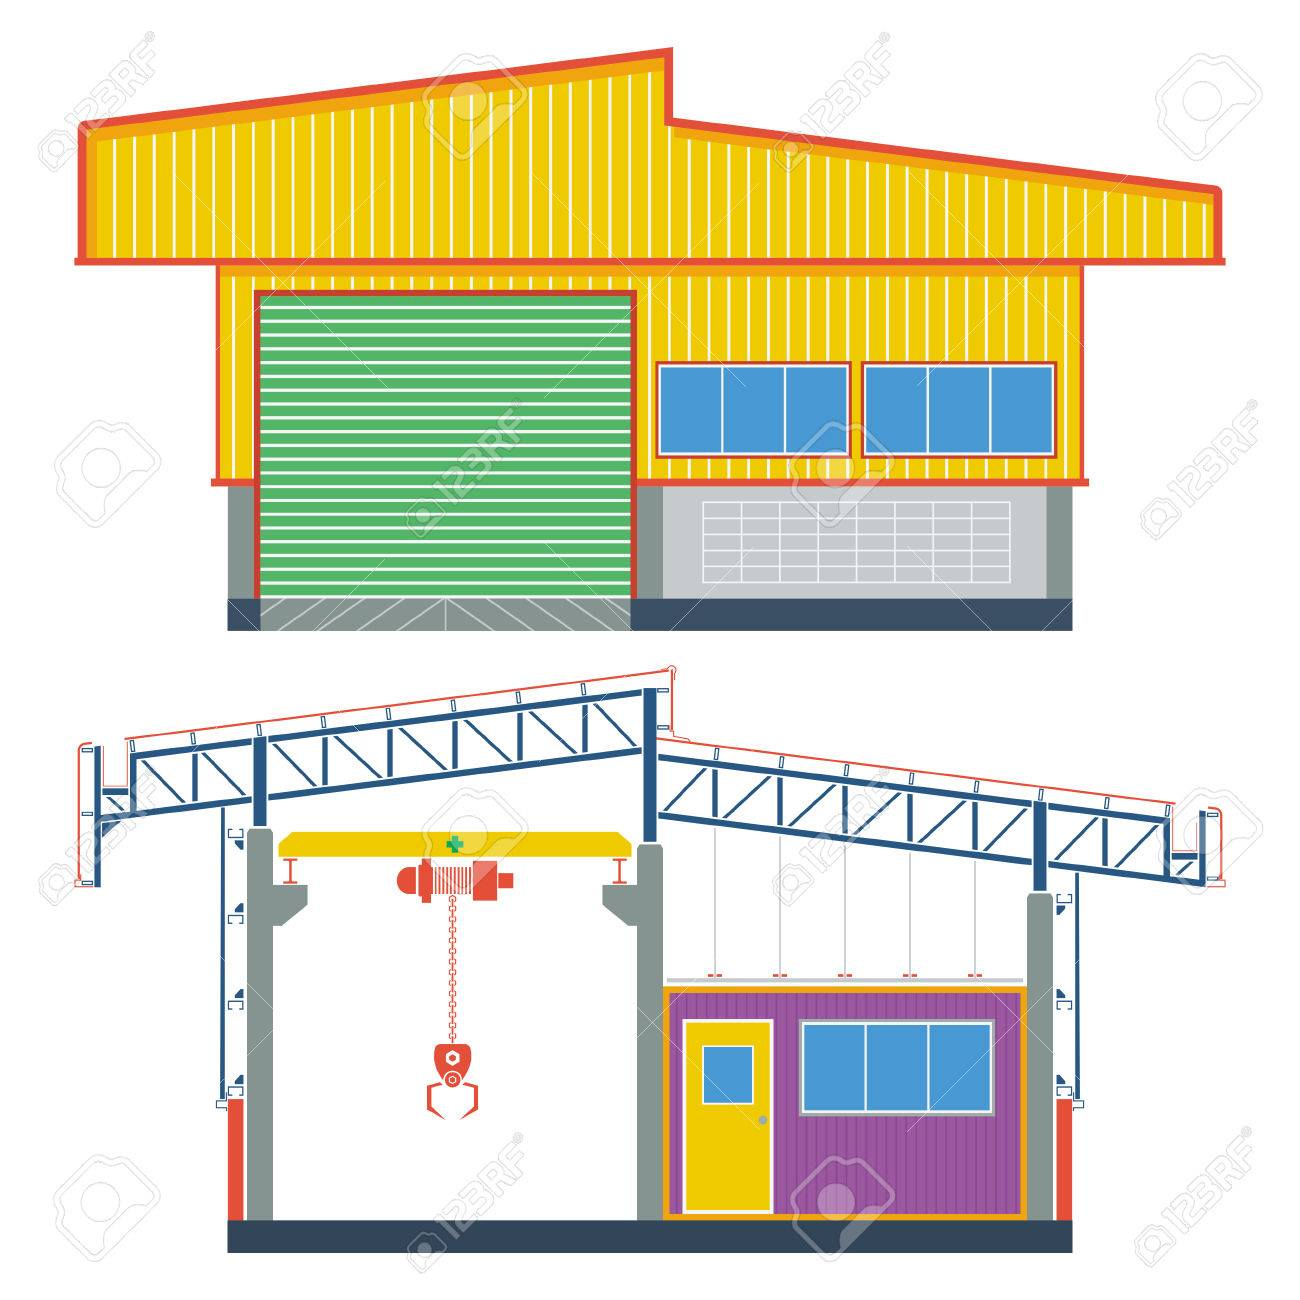 Factory clipart industrial shed.